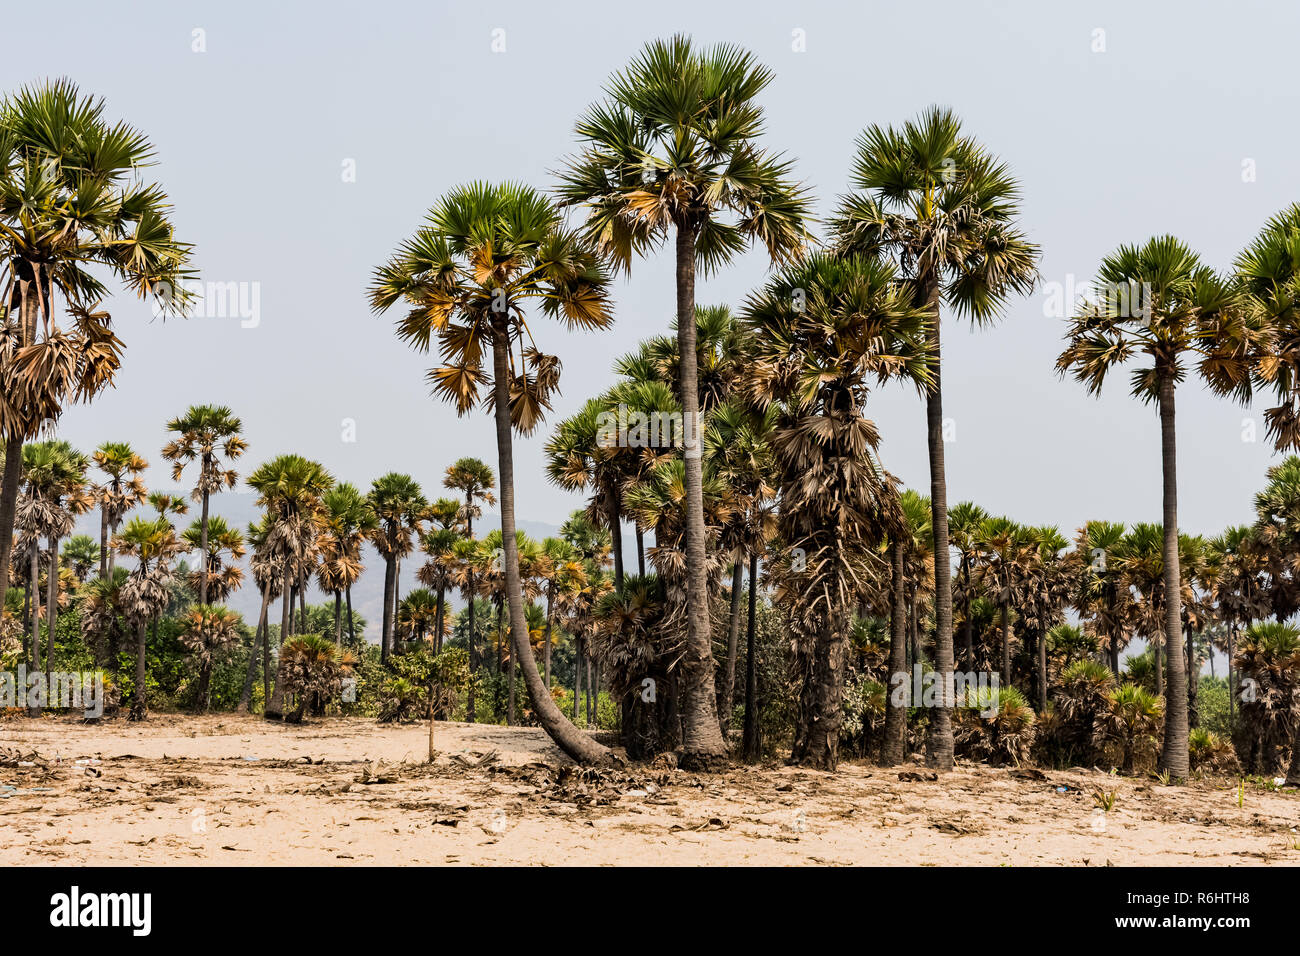 Green palm trees grow out of the red sand on the background of the blue sky with small village beach. Stock Photo